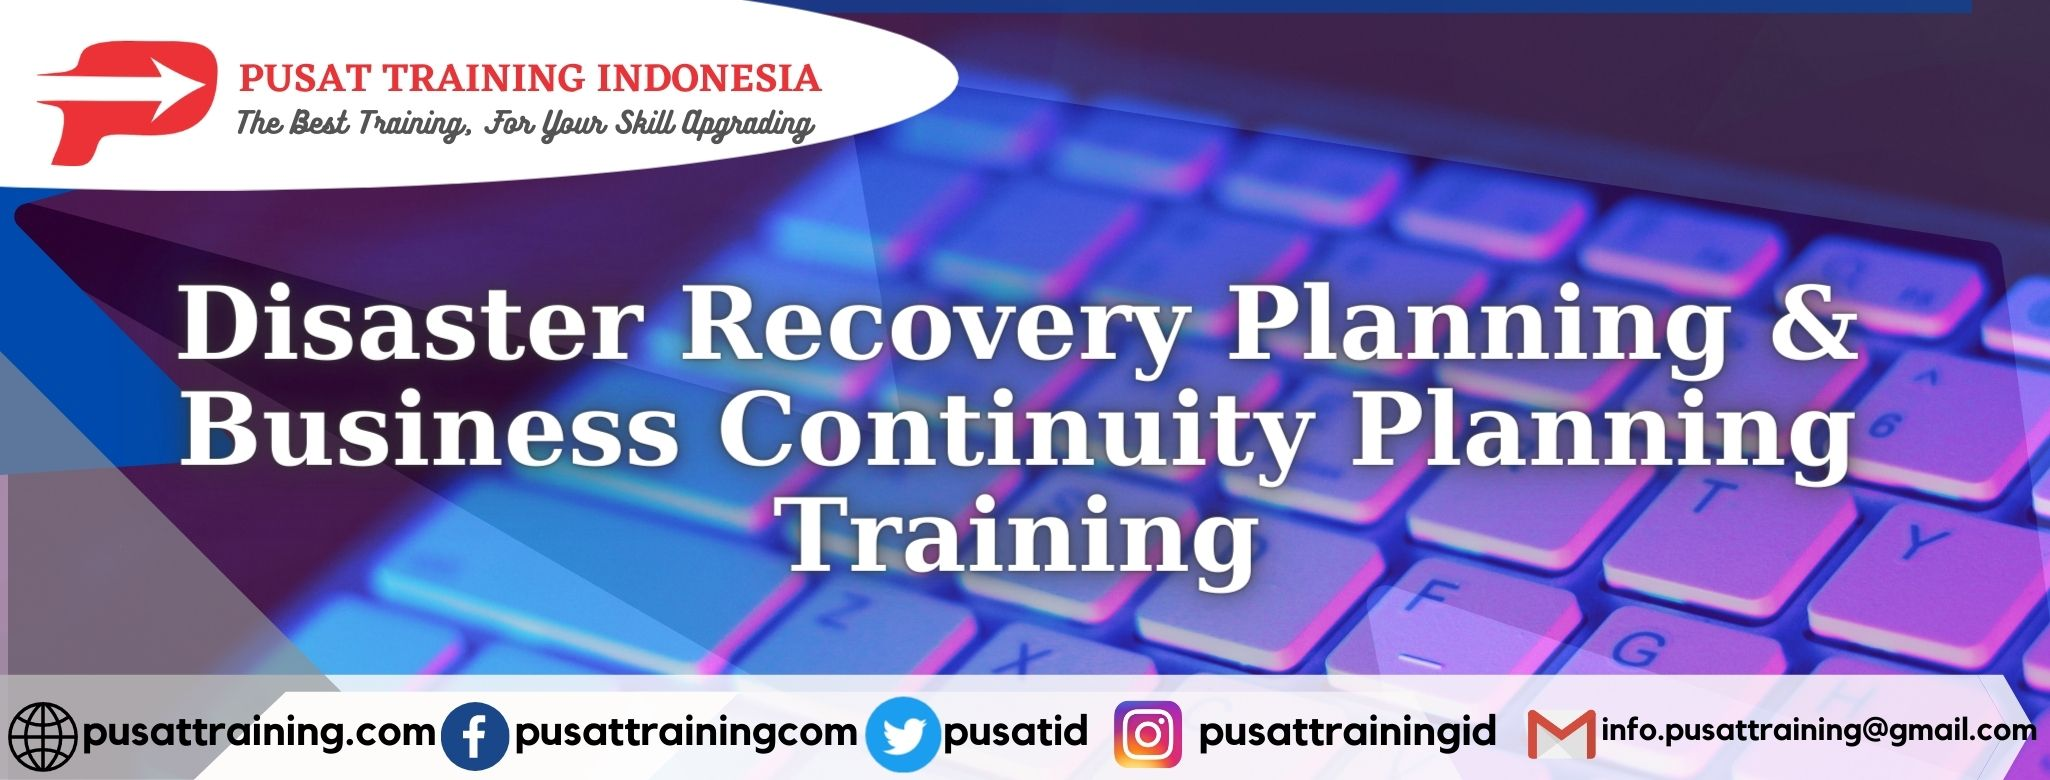 Disaster-Recovery-Planning-Business-Continuity-Planning-Training